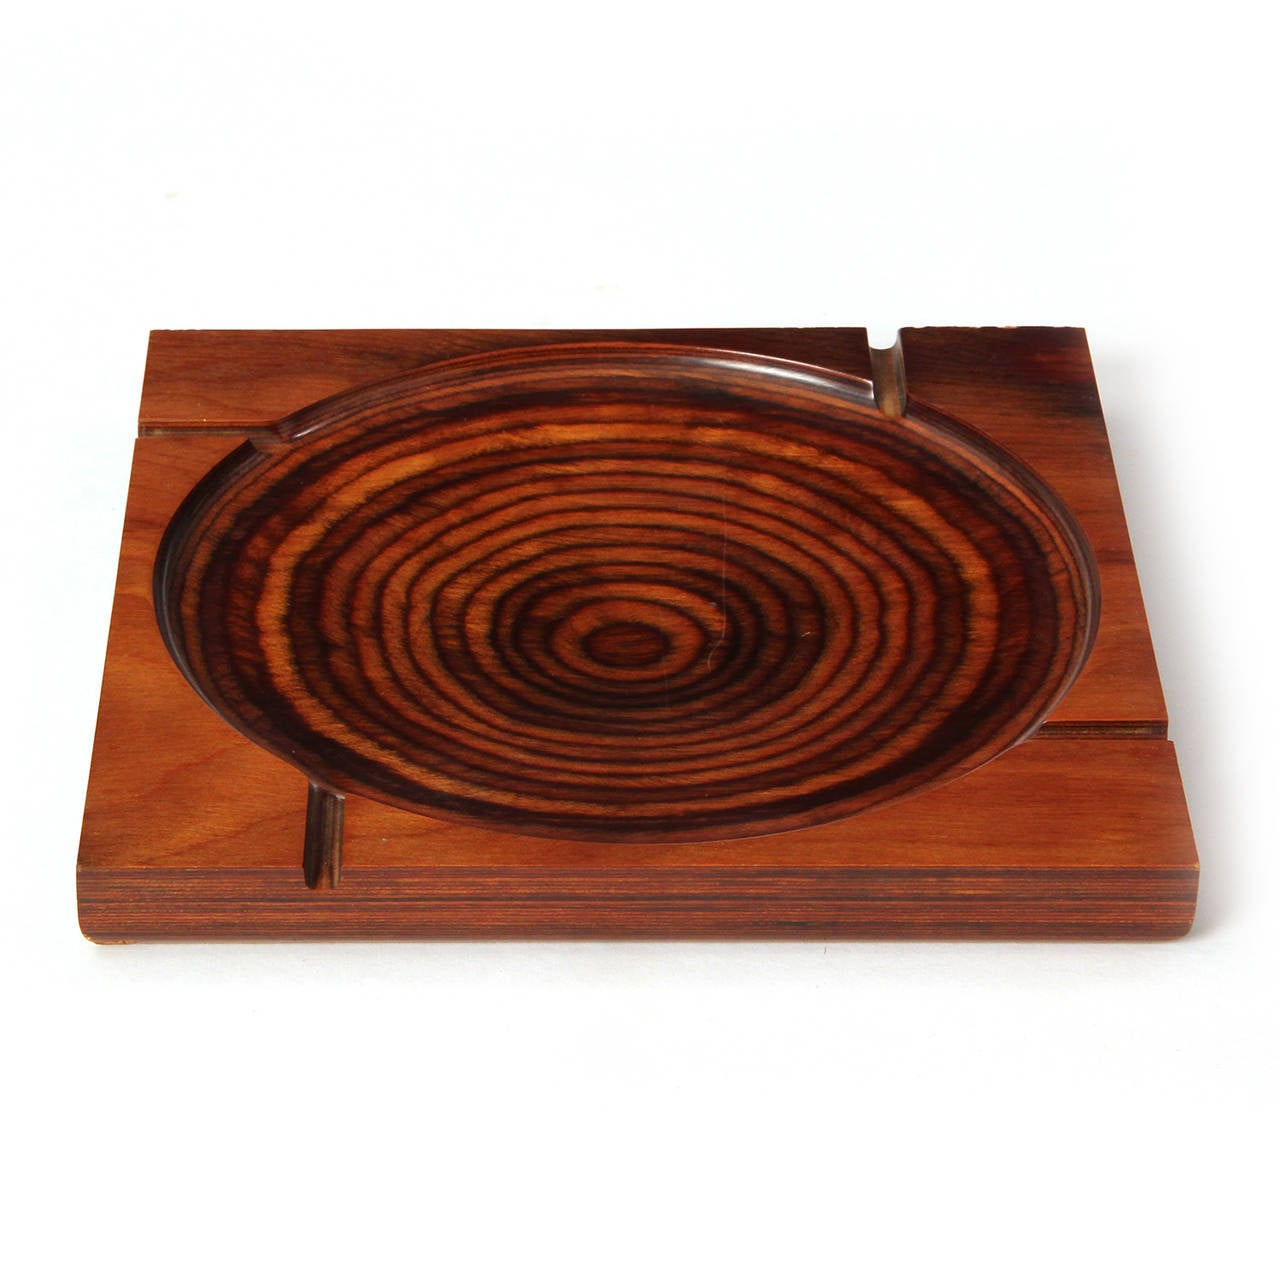 A striking geometric ashtray fashioned from a square of stratified and stained plywood having a delicately scooped bowl and routed channels for cigarettes.